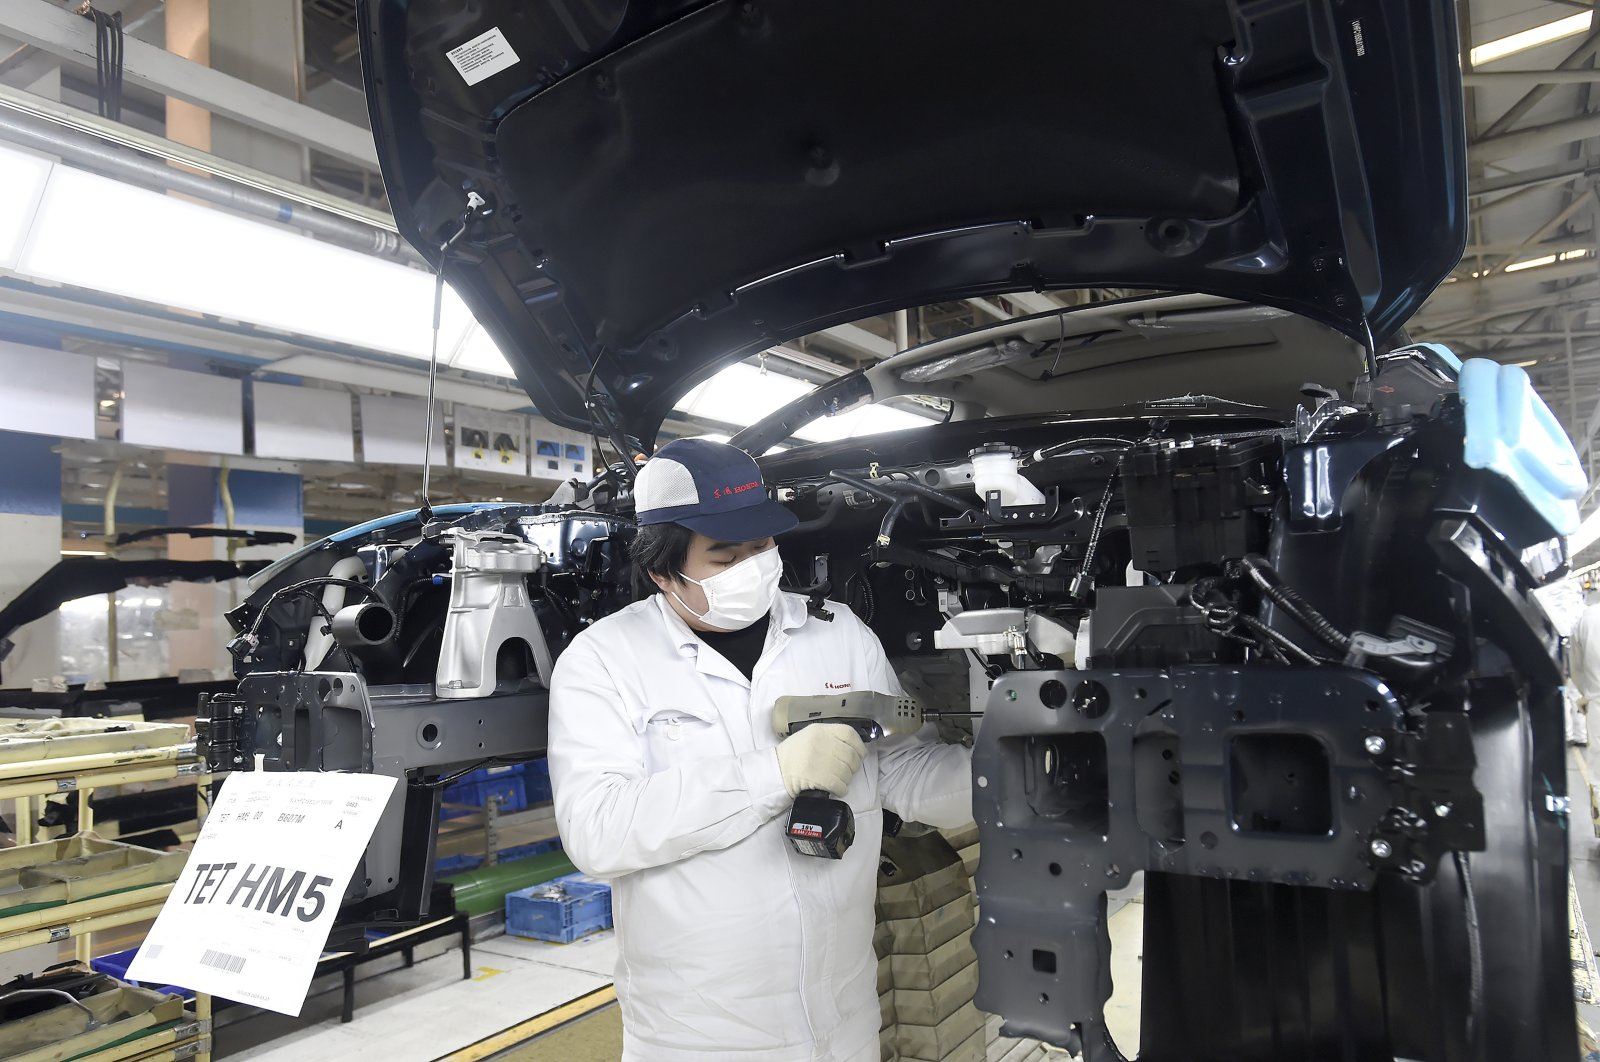 A worker wearing a face mask works on an assembly line at a Dongfeng Honda automotive manufacturing plant in Wuhan in central China's Hubei Province, Saturday, March 28, 2020. (AP Photo)